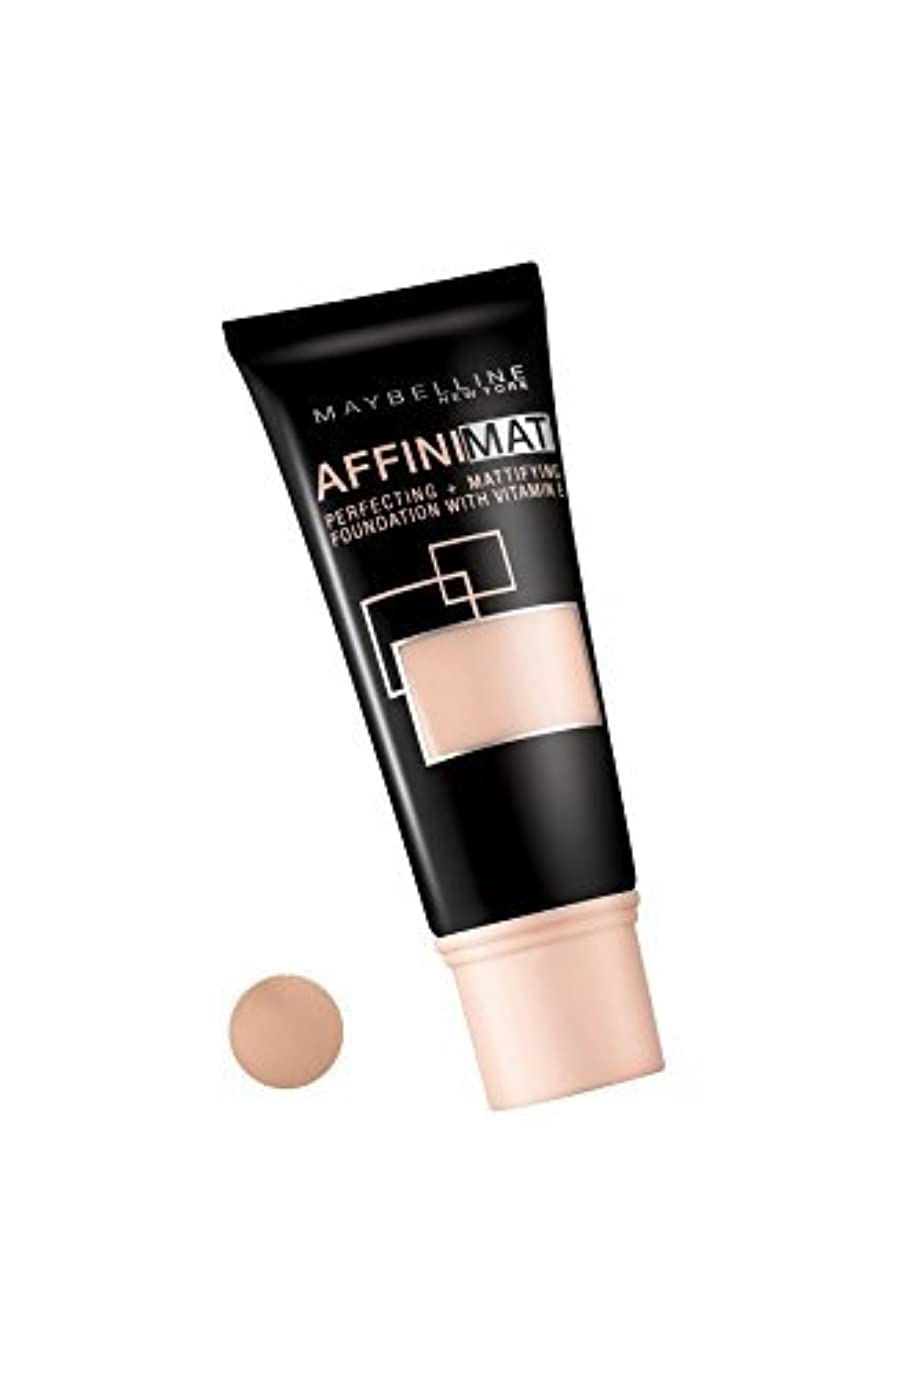 炎上シュート花輪Maybelline Affinimat Perfecting + Mattifying Foundation - 42 Dark Beige by Maybelline